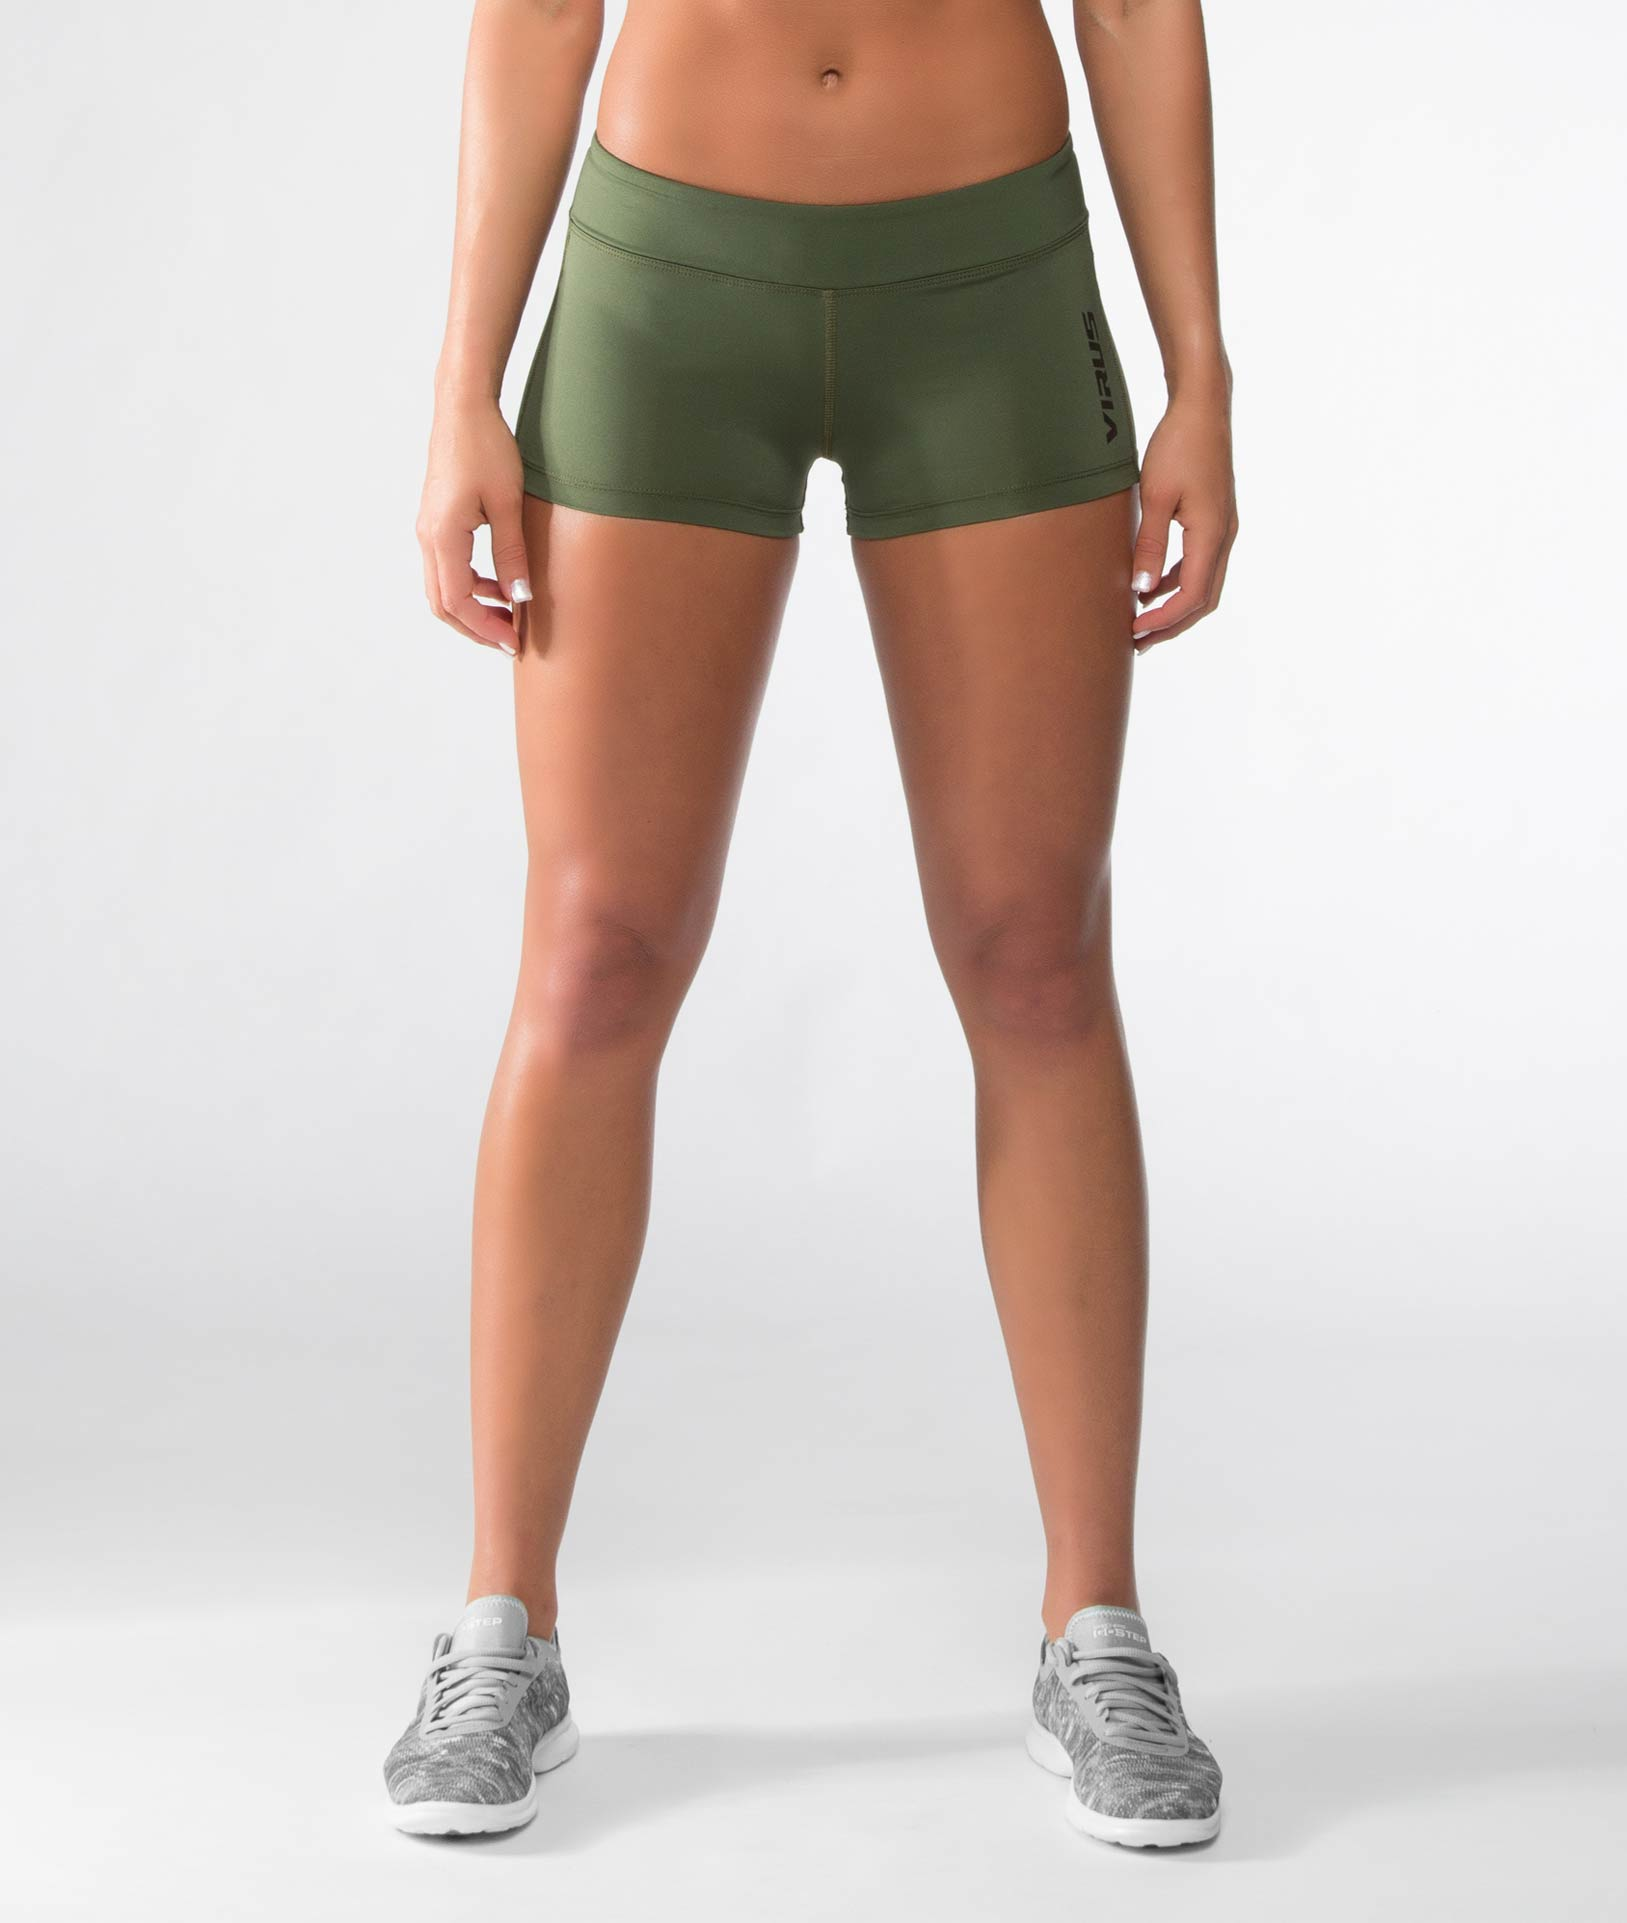 Women's Stay Cool DATA Training Short (ECo22)- Olive Green